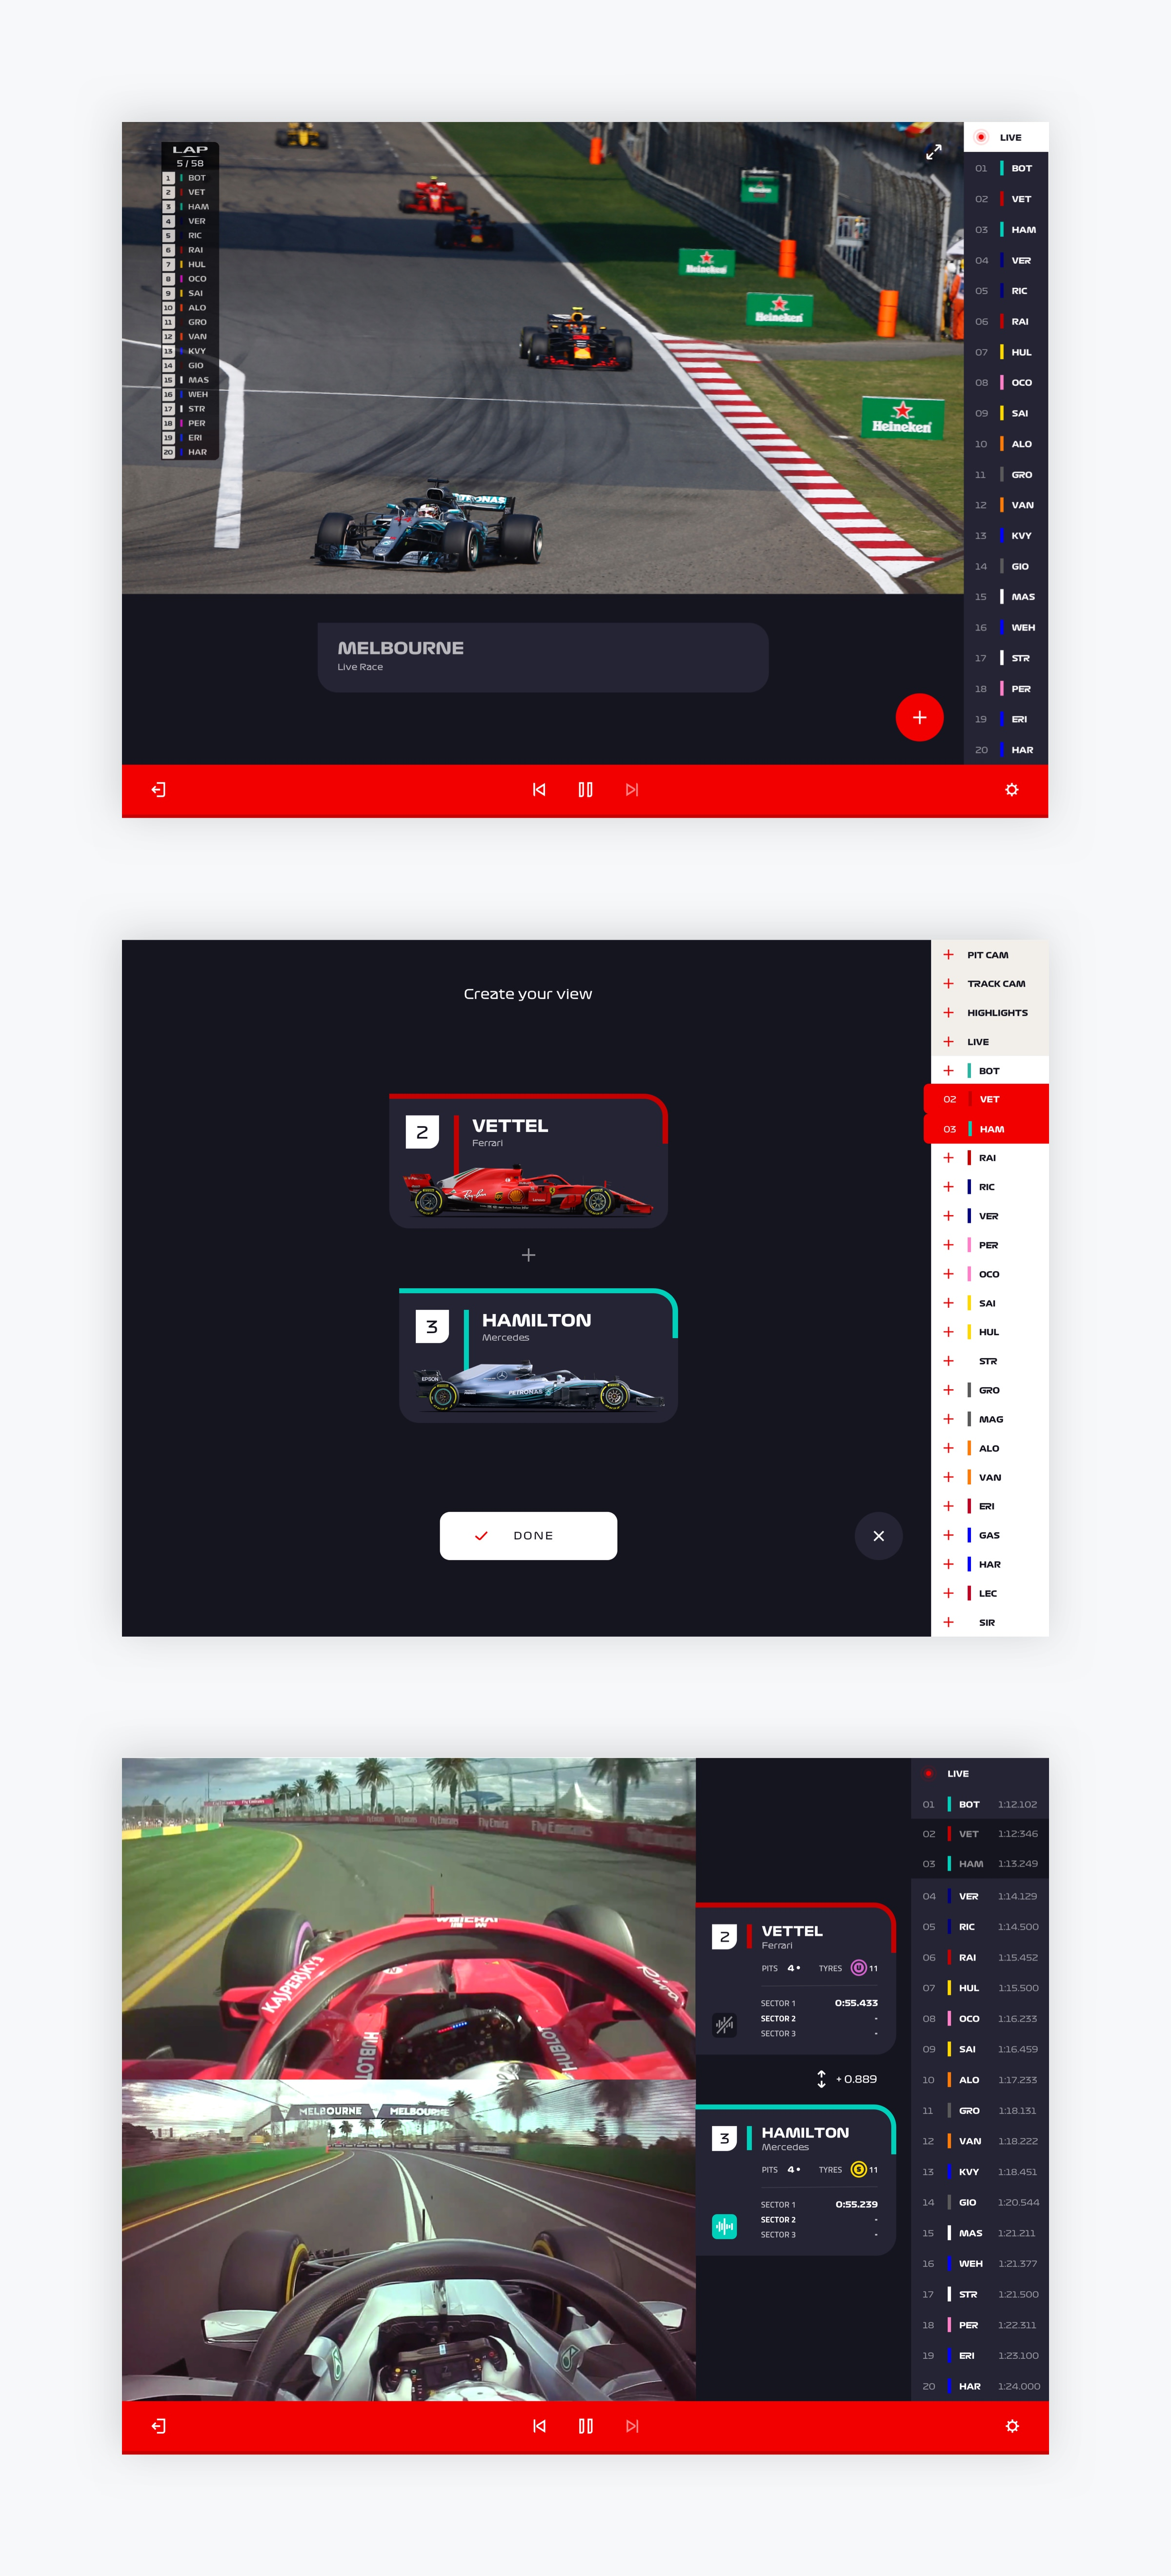 F1TV - Viewer control